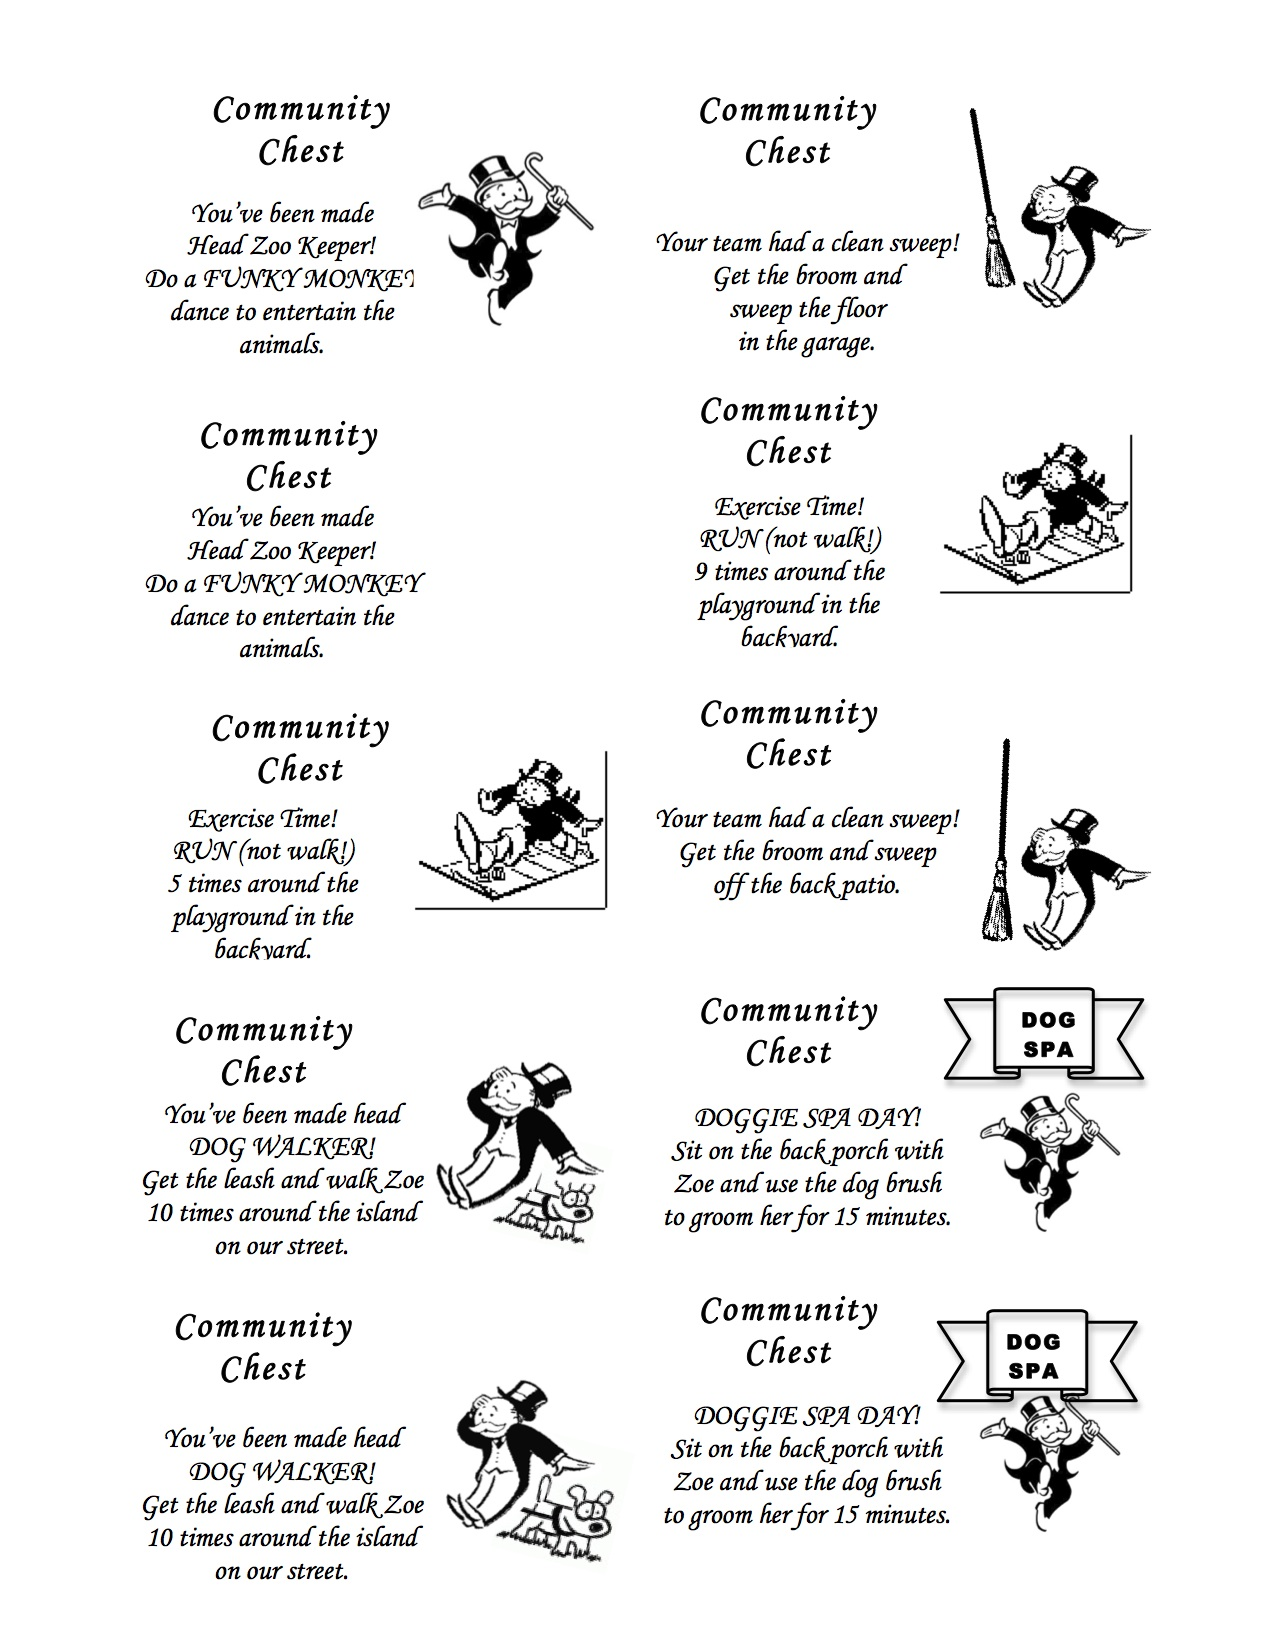 Monopoly Chance Cards Printable That Are Eloquent